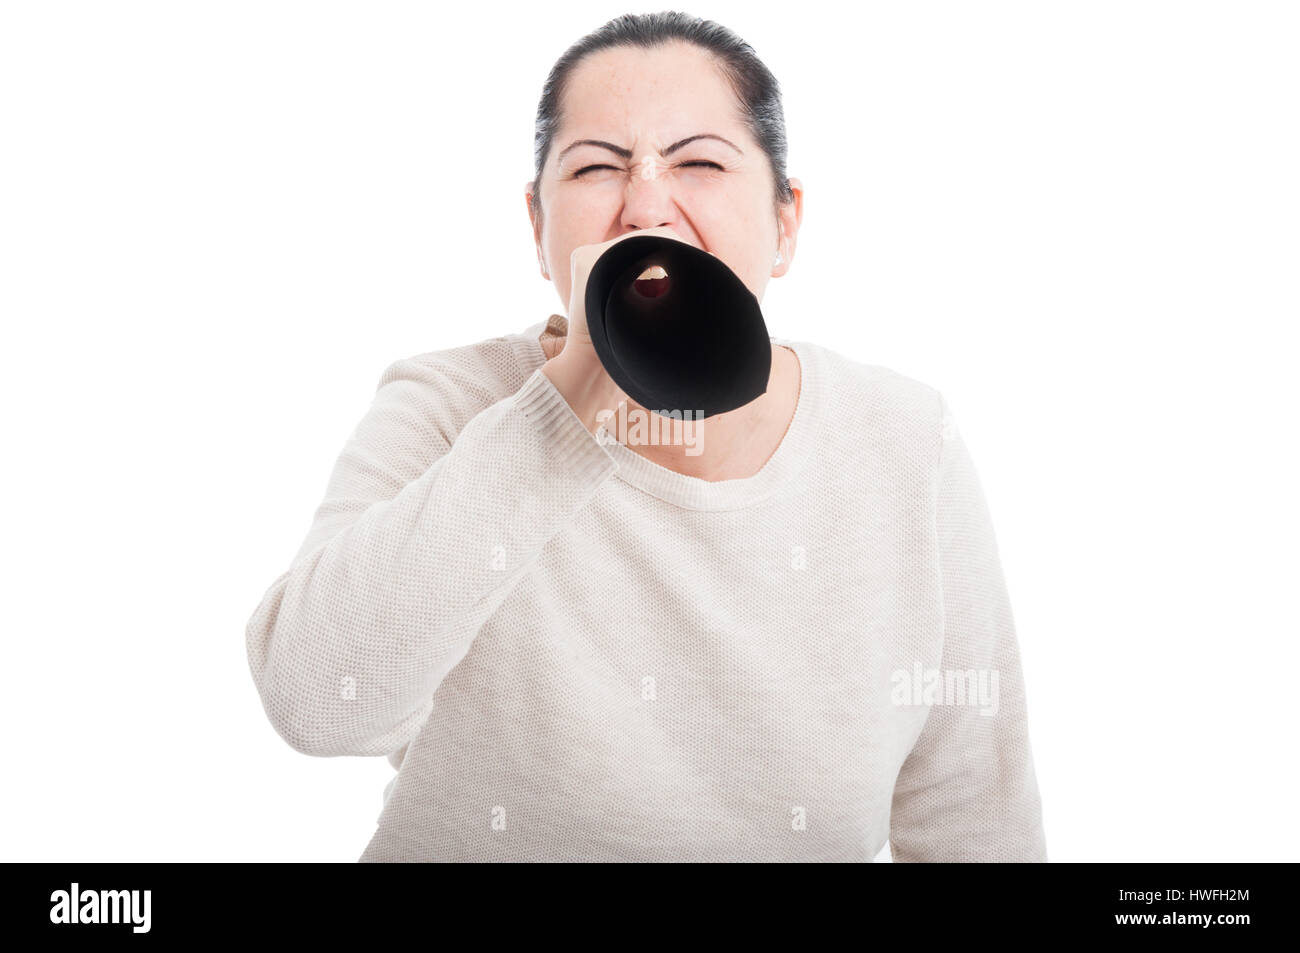 Young brunette woman talking loud through megaphone made of paper showing authority on white background - Stock Image